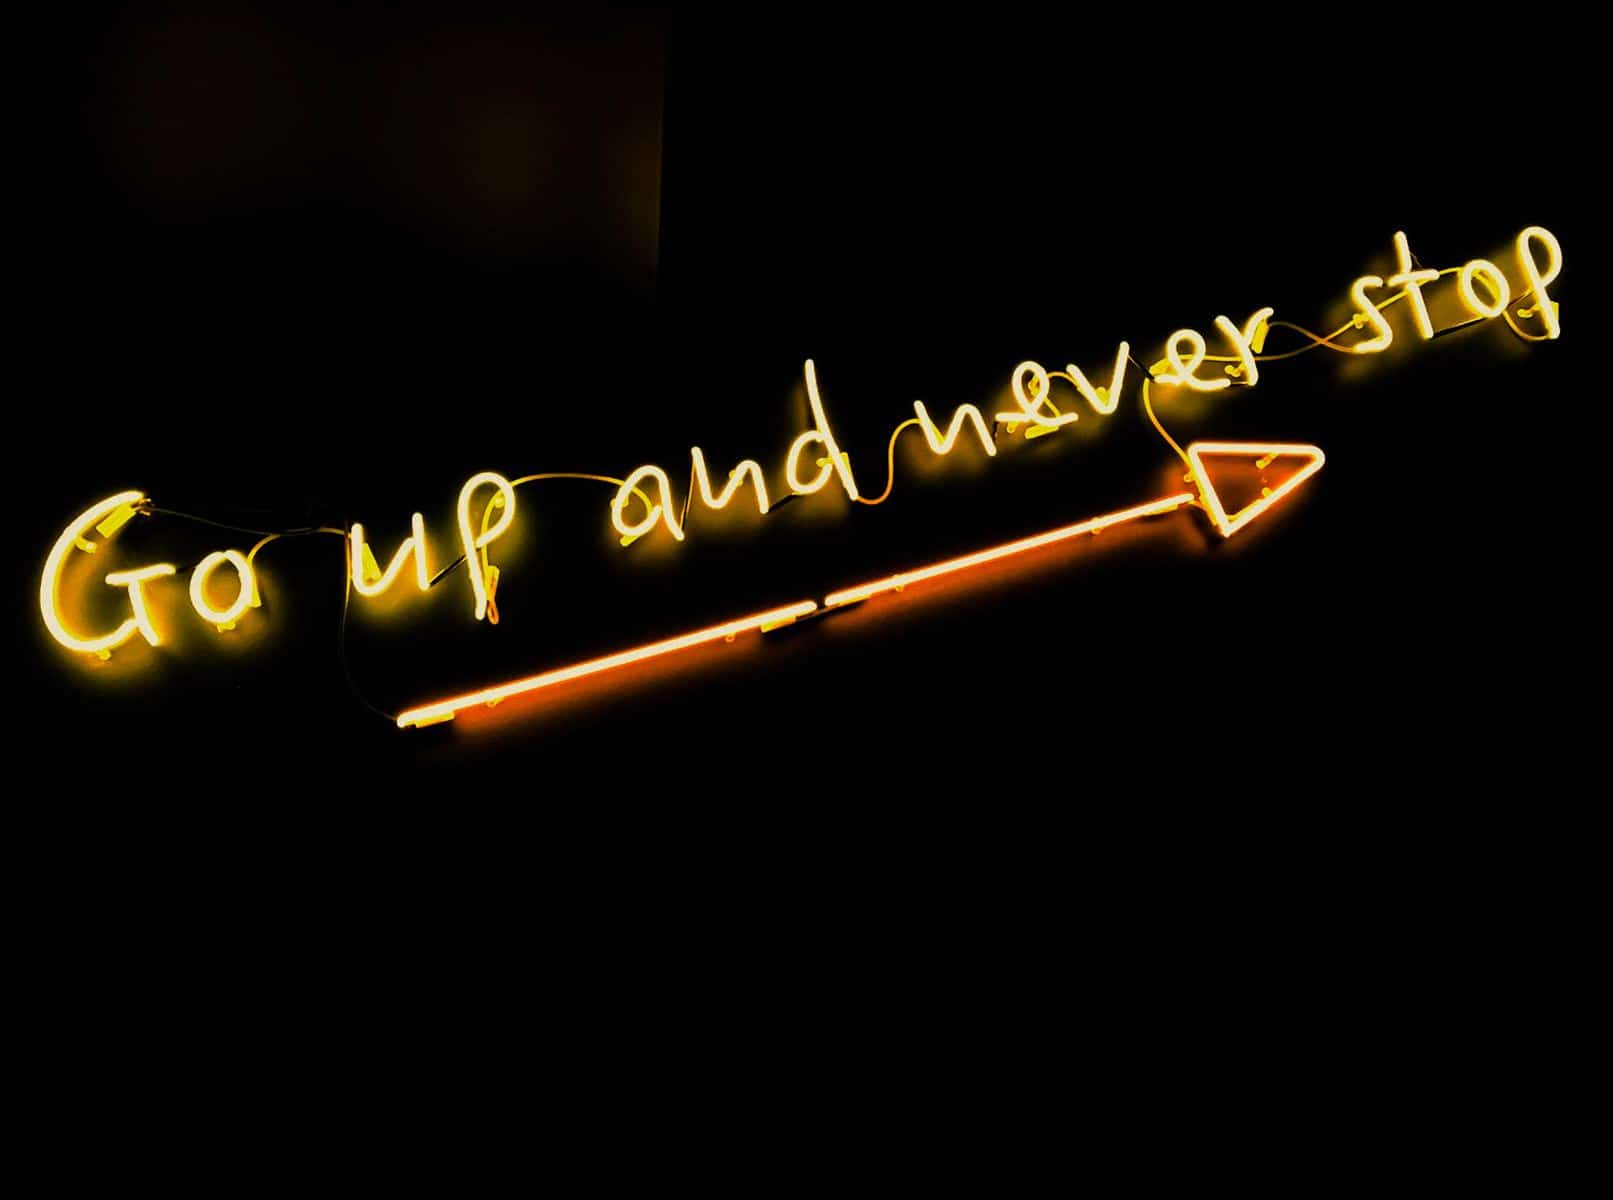 Inspiration - Go up and never stop